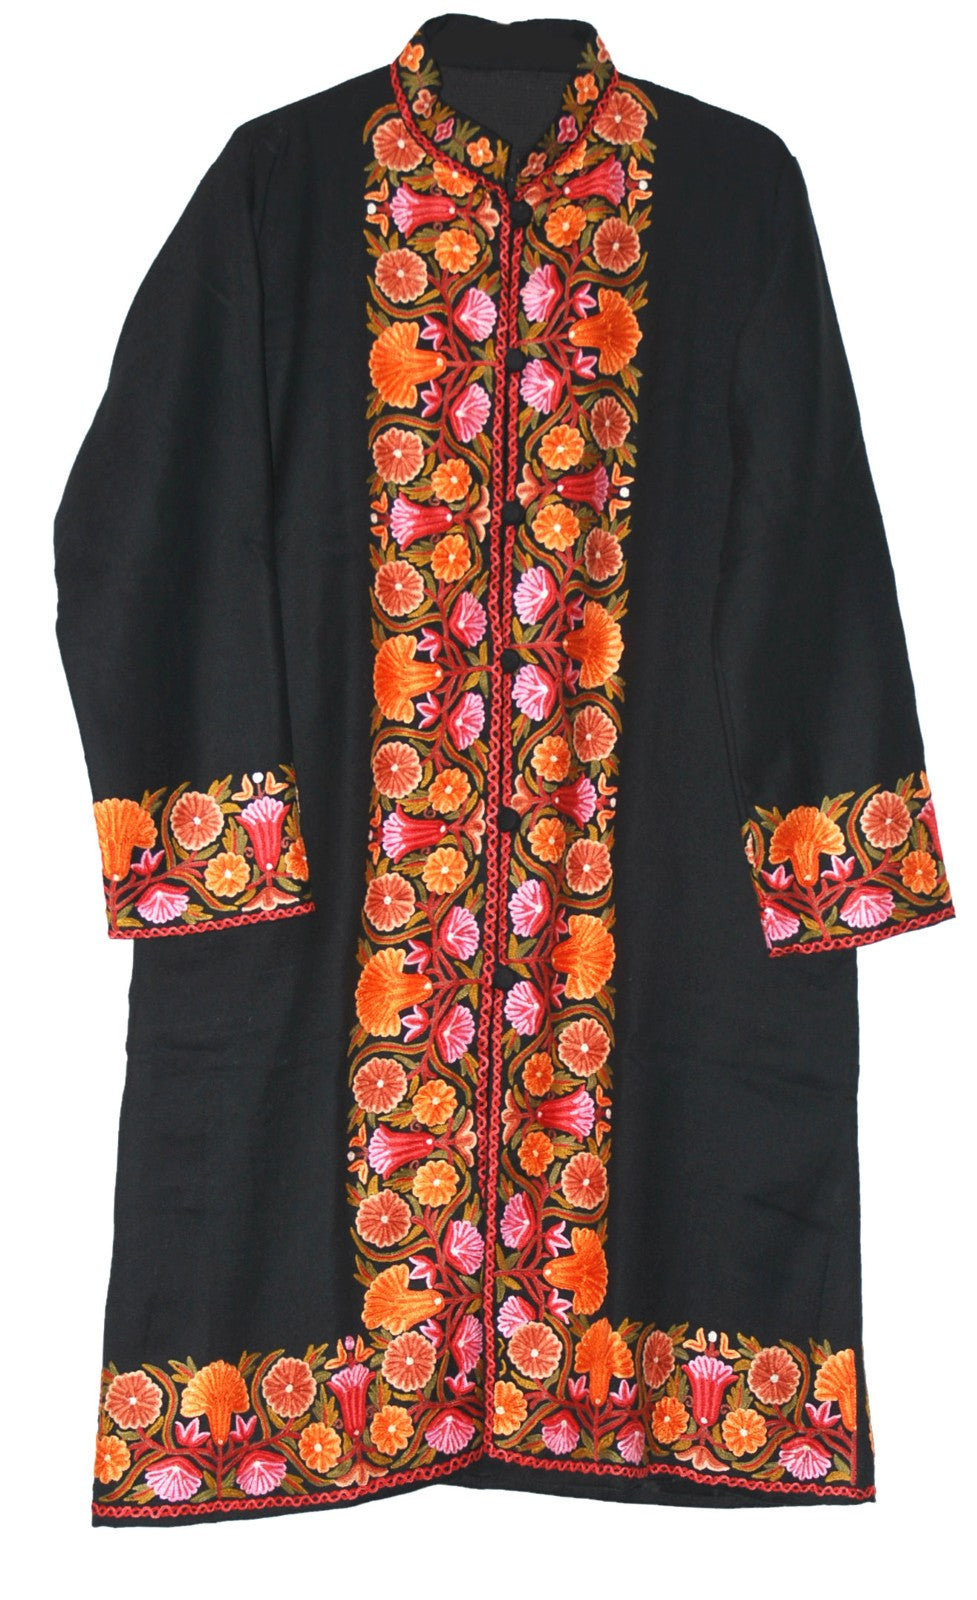 Embroidered Woolen Coat Black, Multicolor Embroidery #BD-117